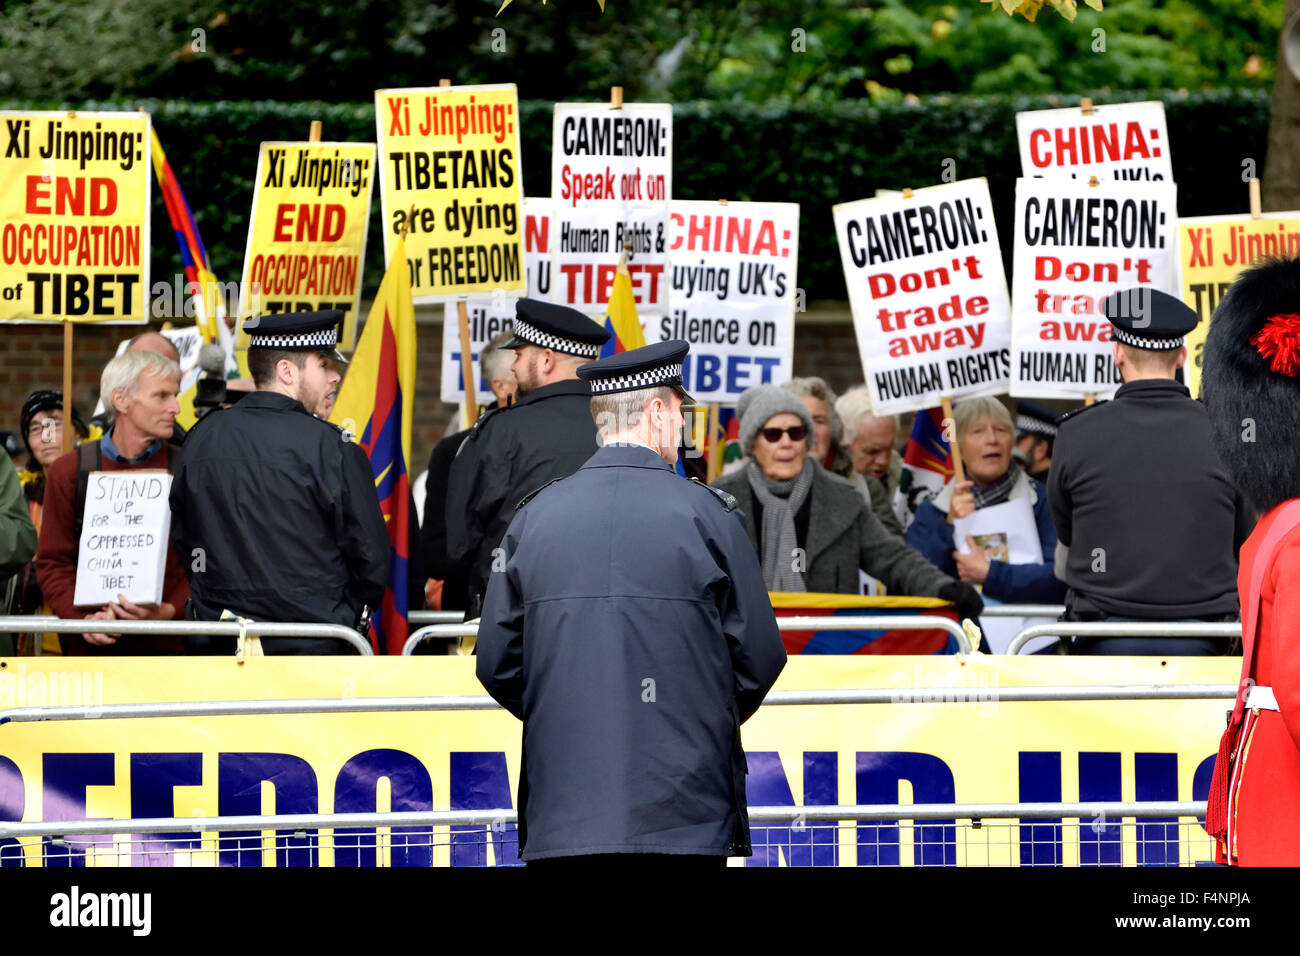 London. Protesters in The Mall as Chinese President Xi Jinping starts his London visit Oct 20th, 2015 - Stock Image